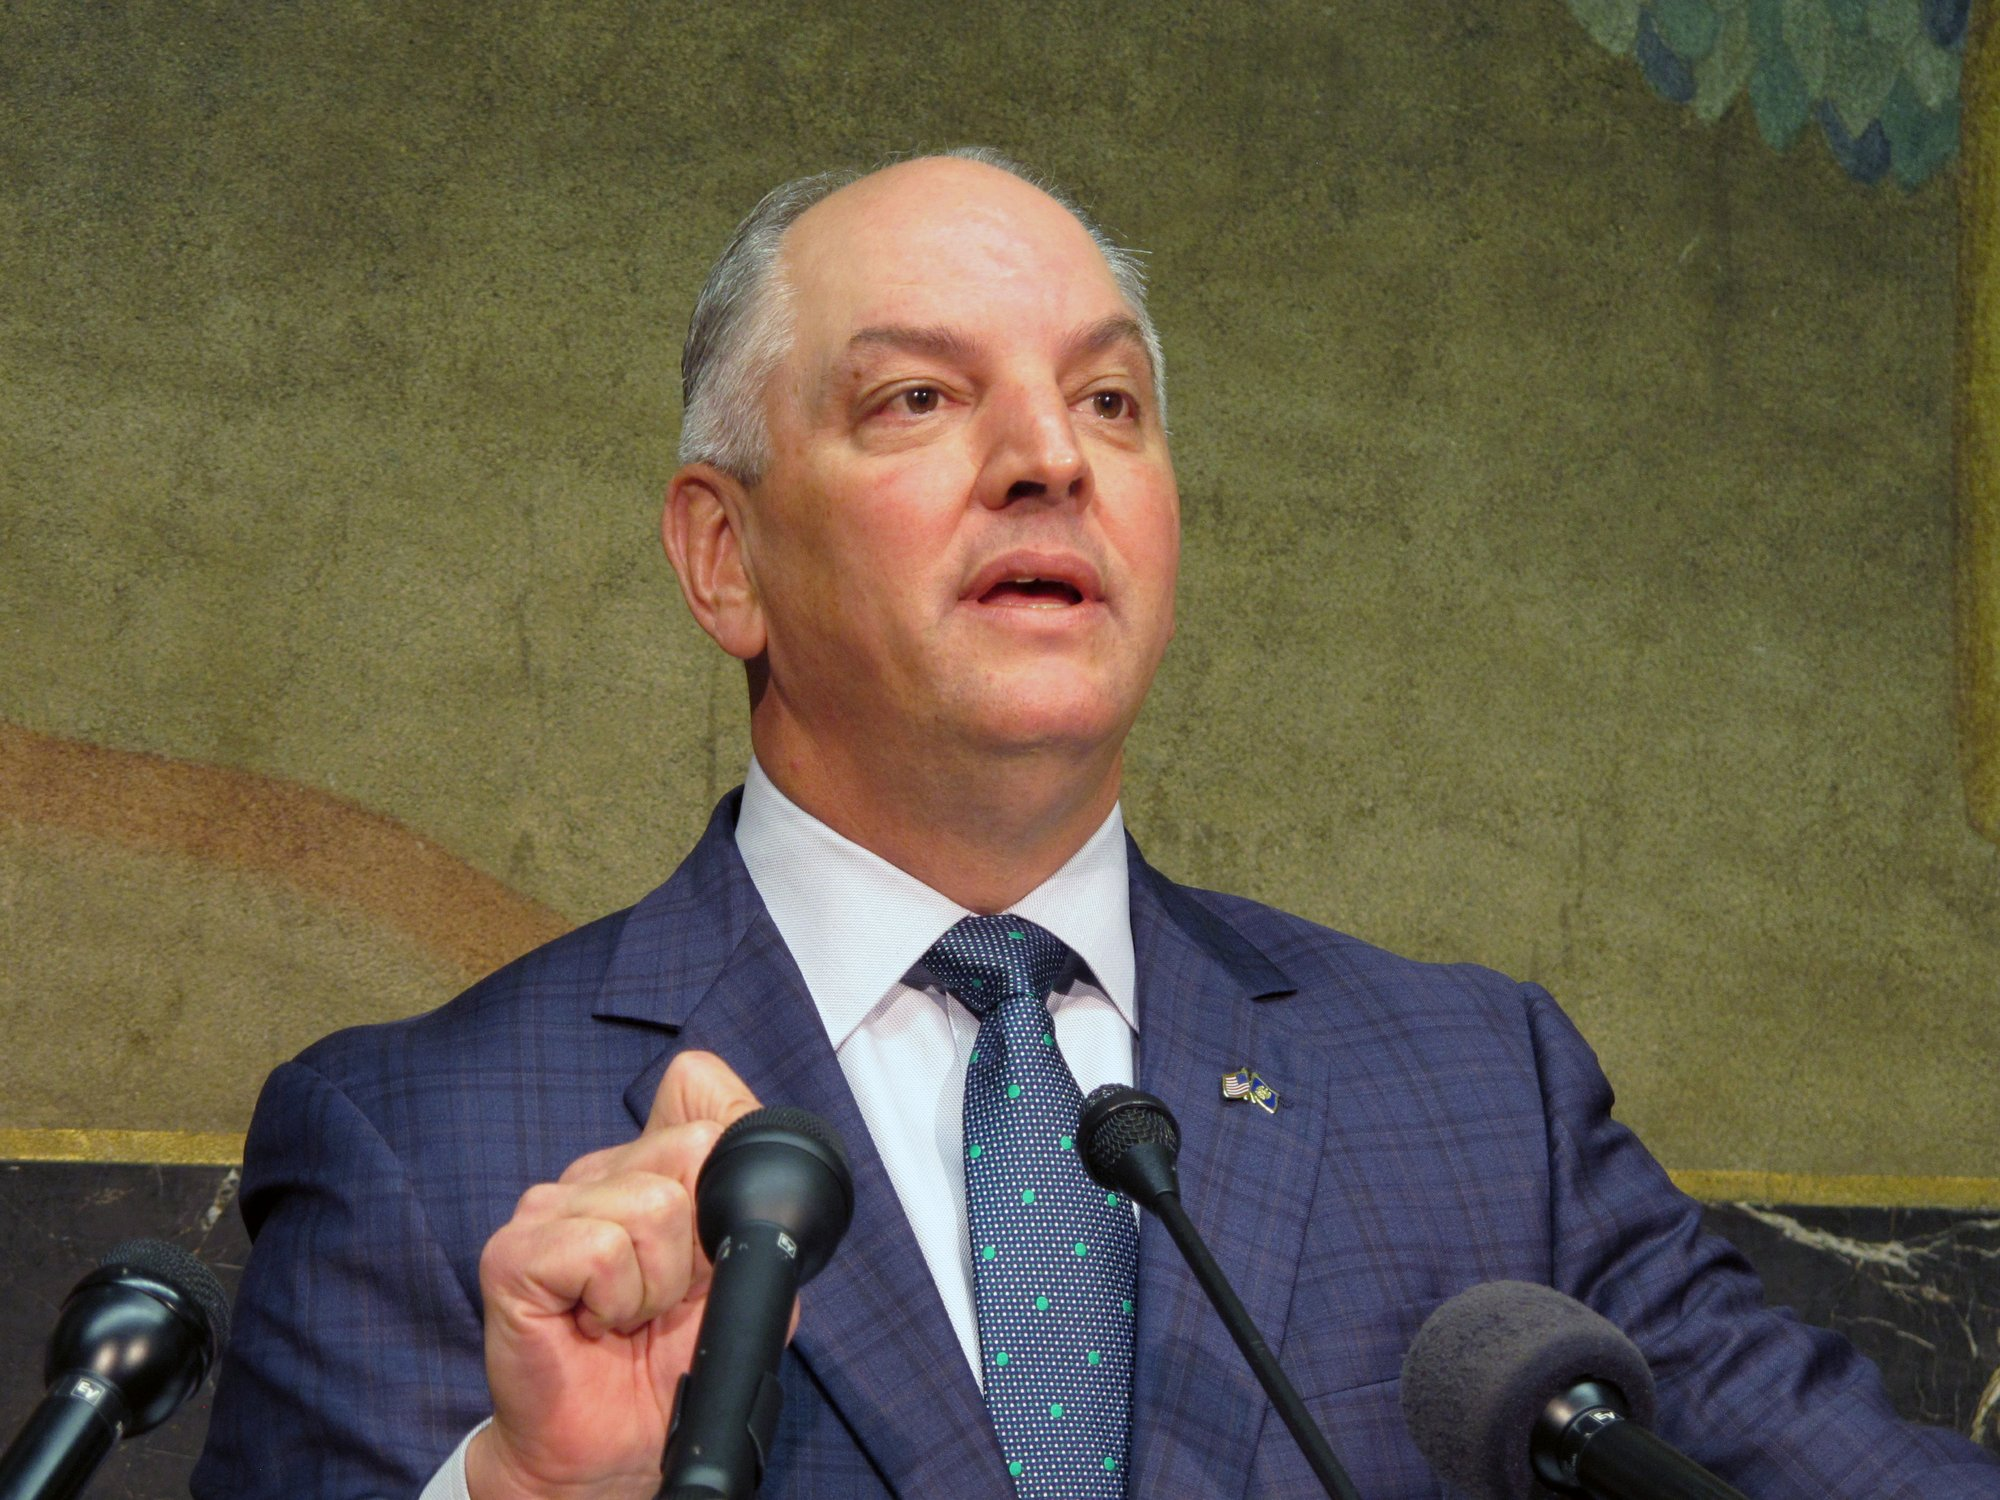 US Louisiana governor signs abortion ban into law